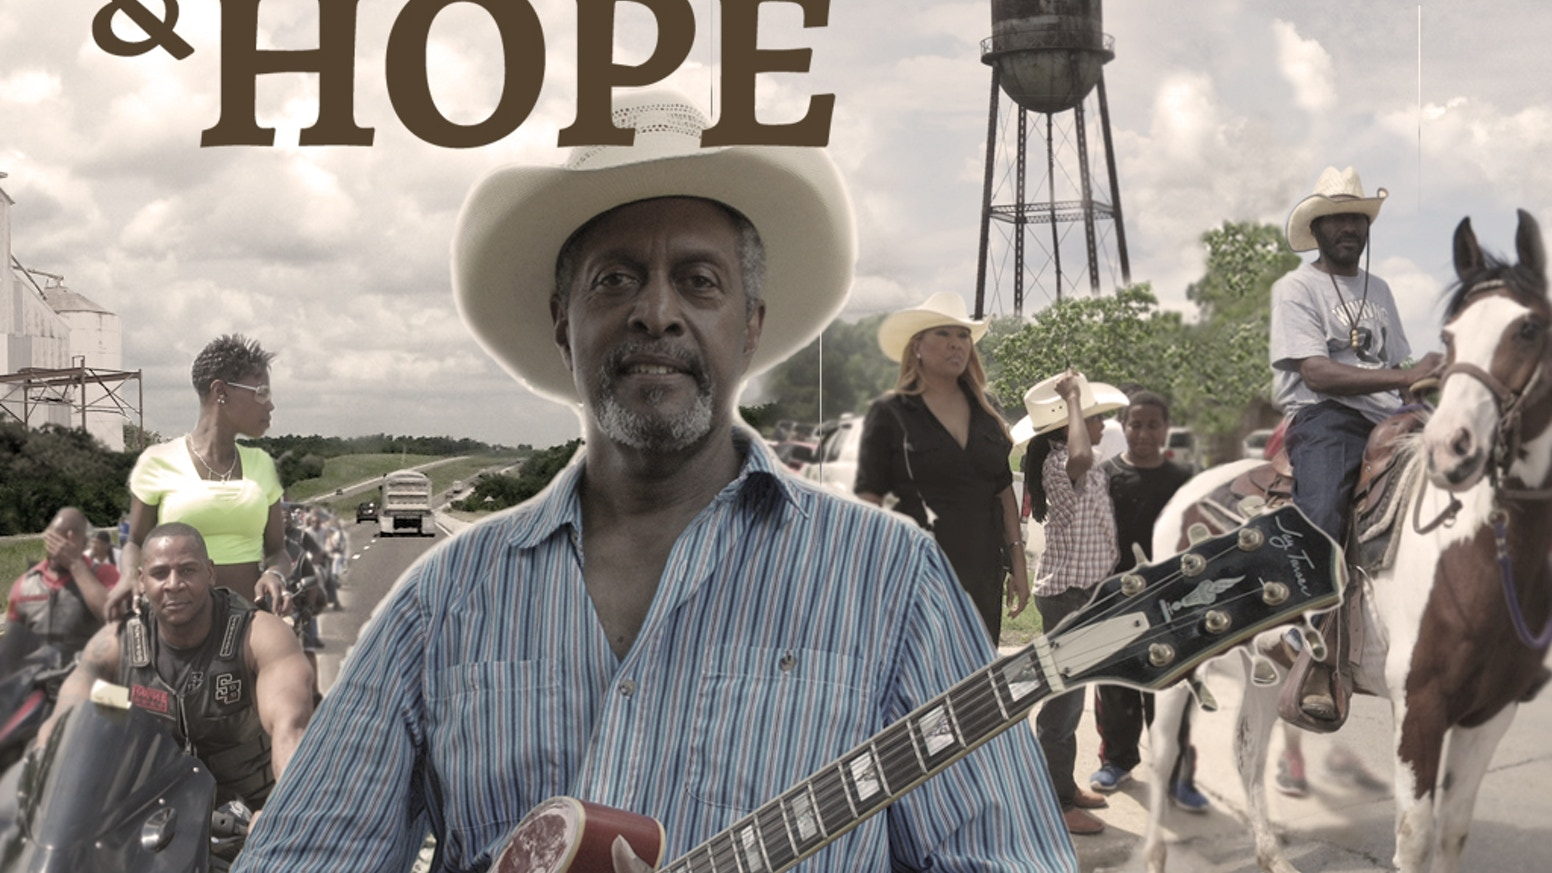 Our documentary about Oklahoma's all-black towns needs a soundtrack that is authentic. Help